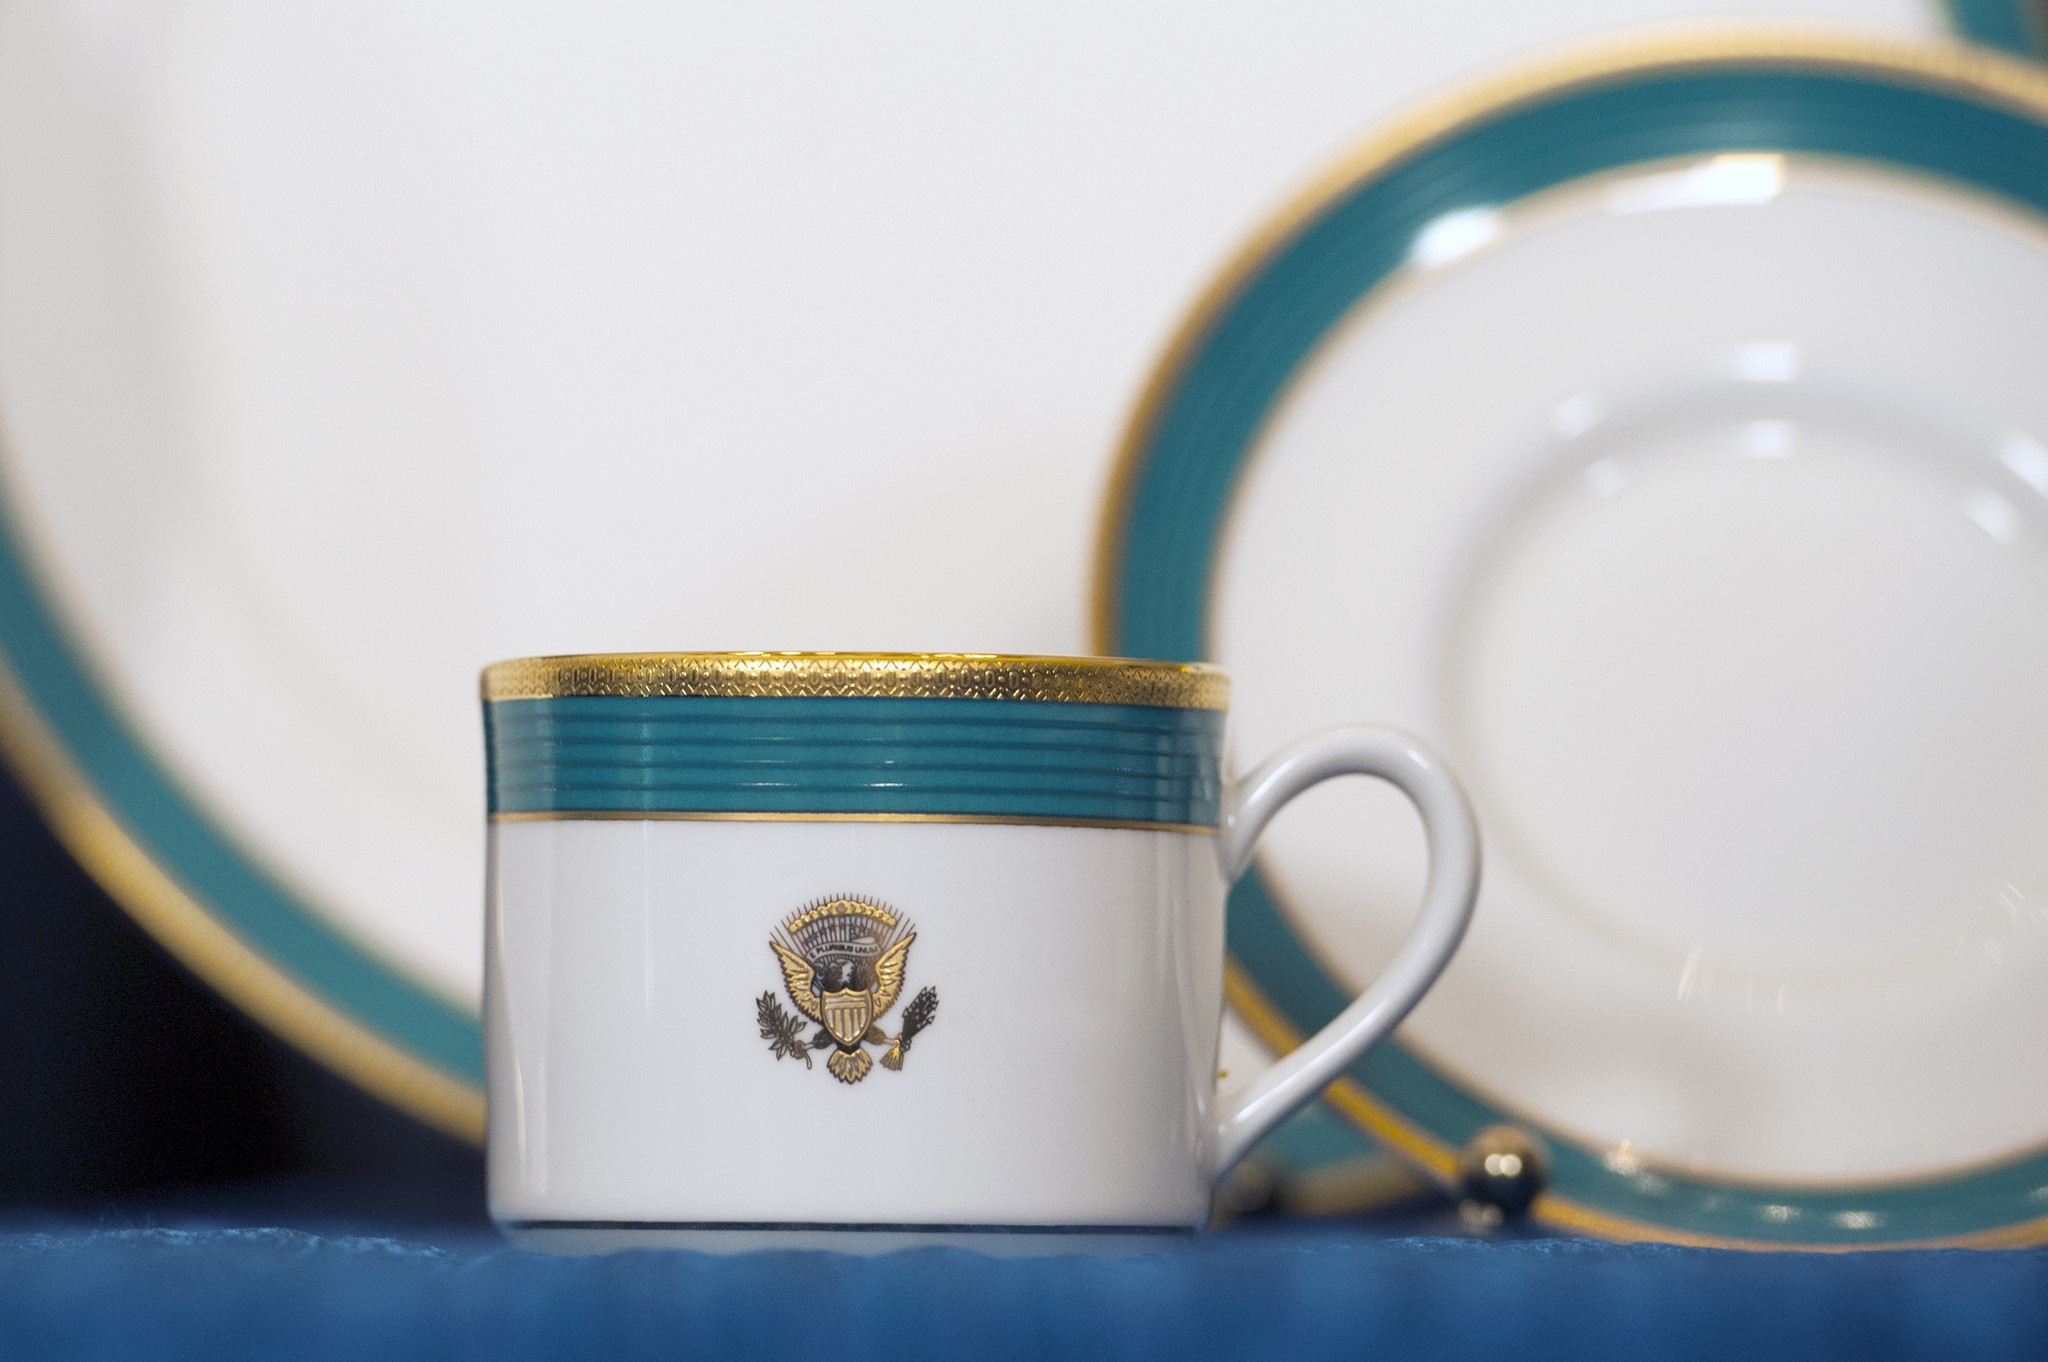 & White House chooses Antioch company to make tableware - Chicago Tribune